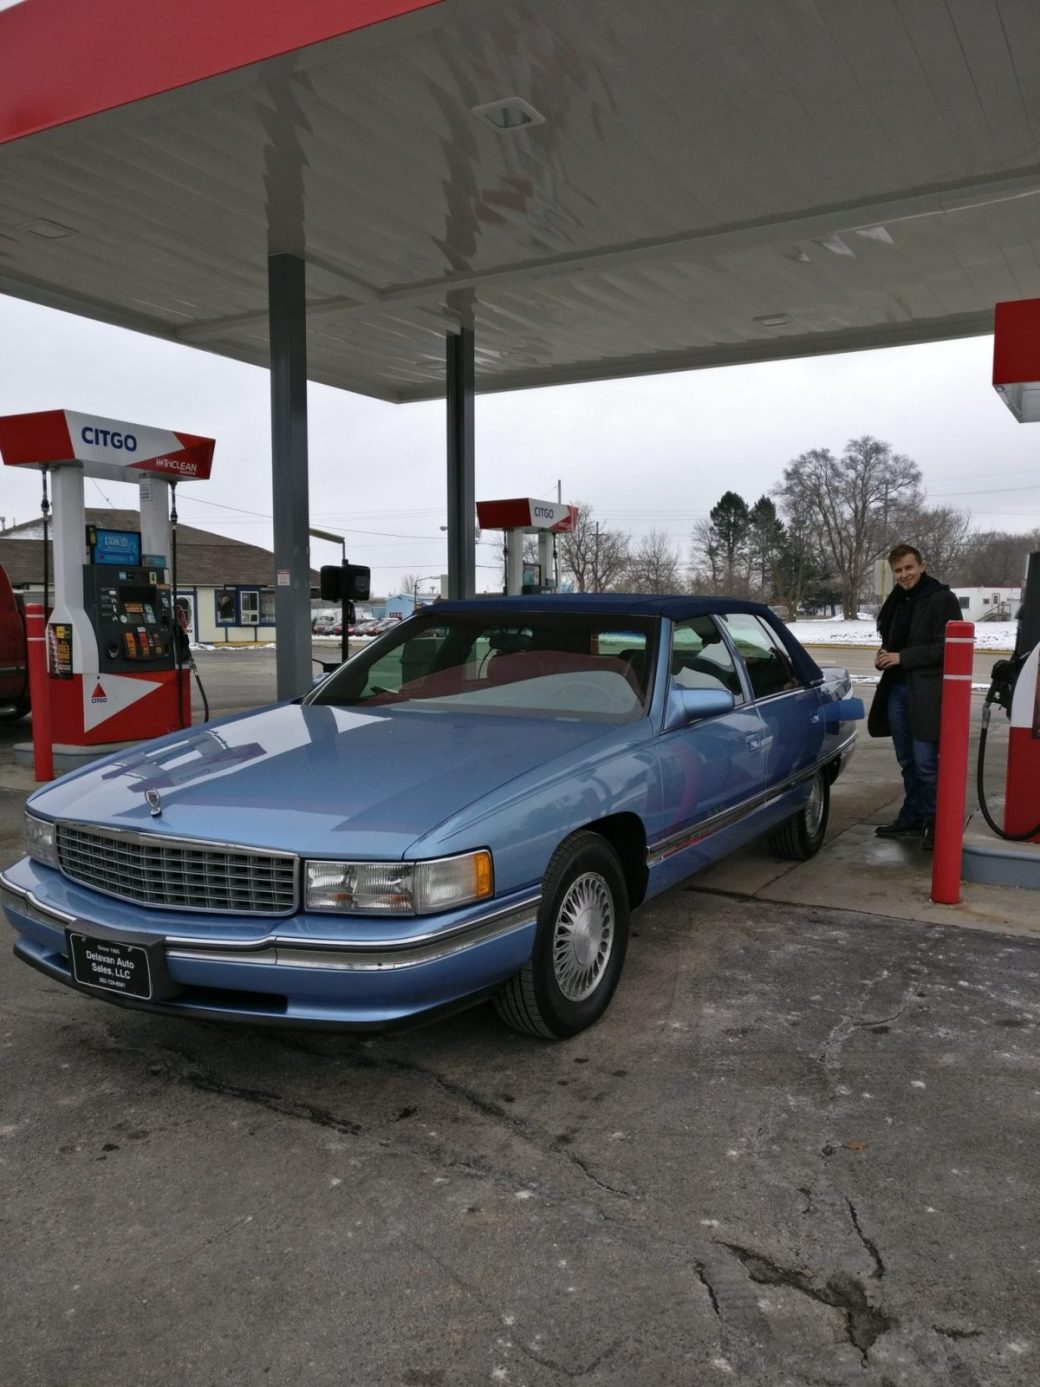 Refueling the Cadillac